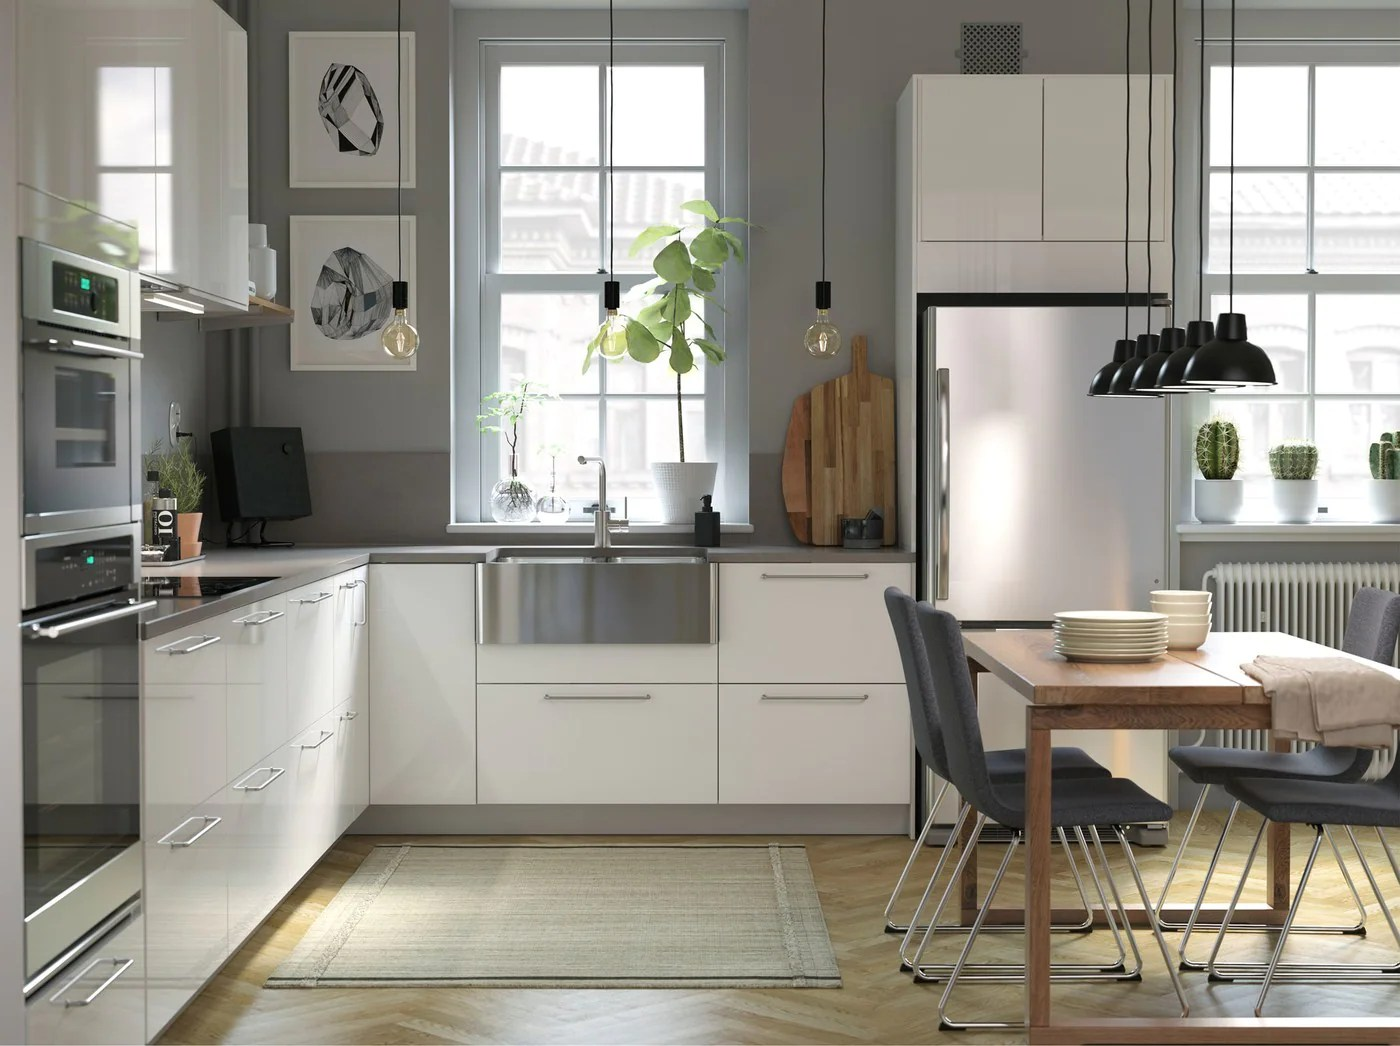 Küche Ikea Family A Modern Bright And Airy Kitchen With Wood Details Ikea